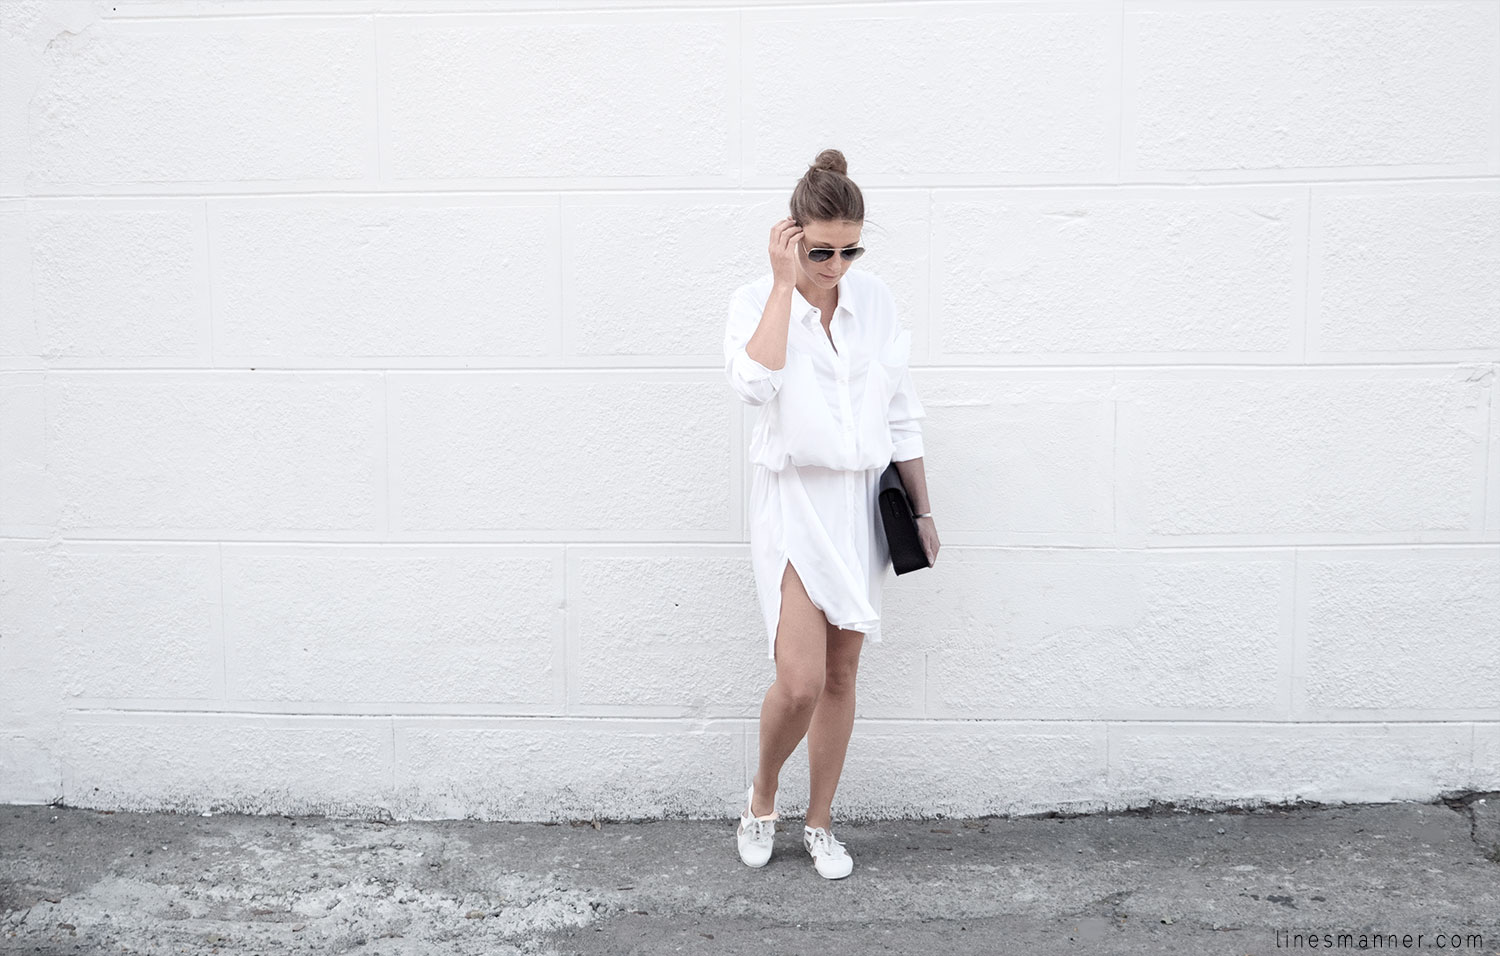 Lines-Manner-Whiteout-Fashion-Minimal-Clean-Fresh-Brigthly-All_White-Monochrome-Immaculate-Trend-Style-Sleek-Slouchy-Details-White_Shirt-Transeasonal-Dressing-Outfit-2